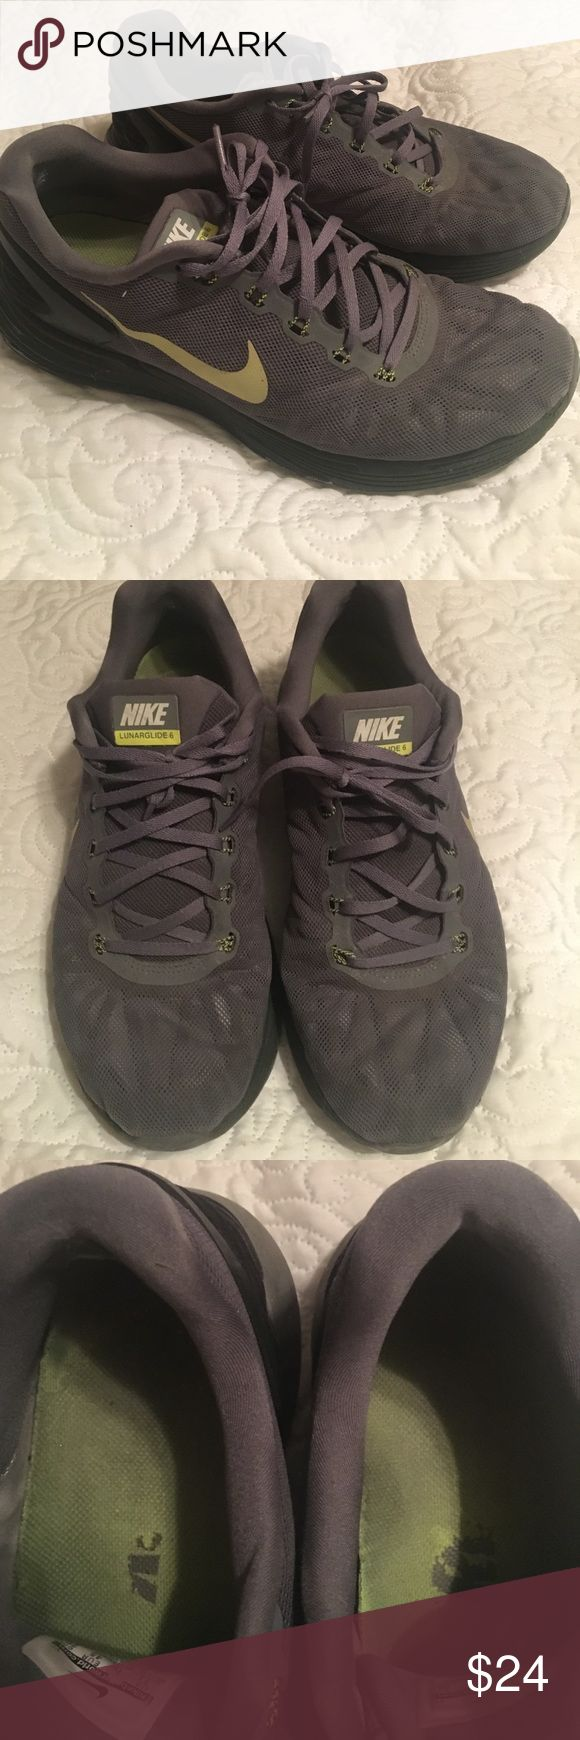 Grey Nike Lunarglide 6 Grey Nike Lunarglide 6 sneakers. Yellow or light lime green check mark. In overall good condition with no major noticeable flaws. Men's size 11 Nike Shoes Athletic Shoes